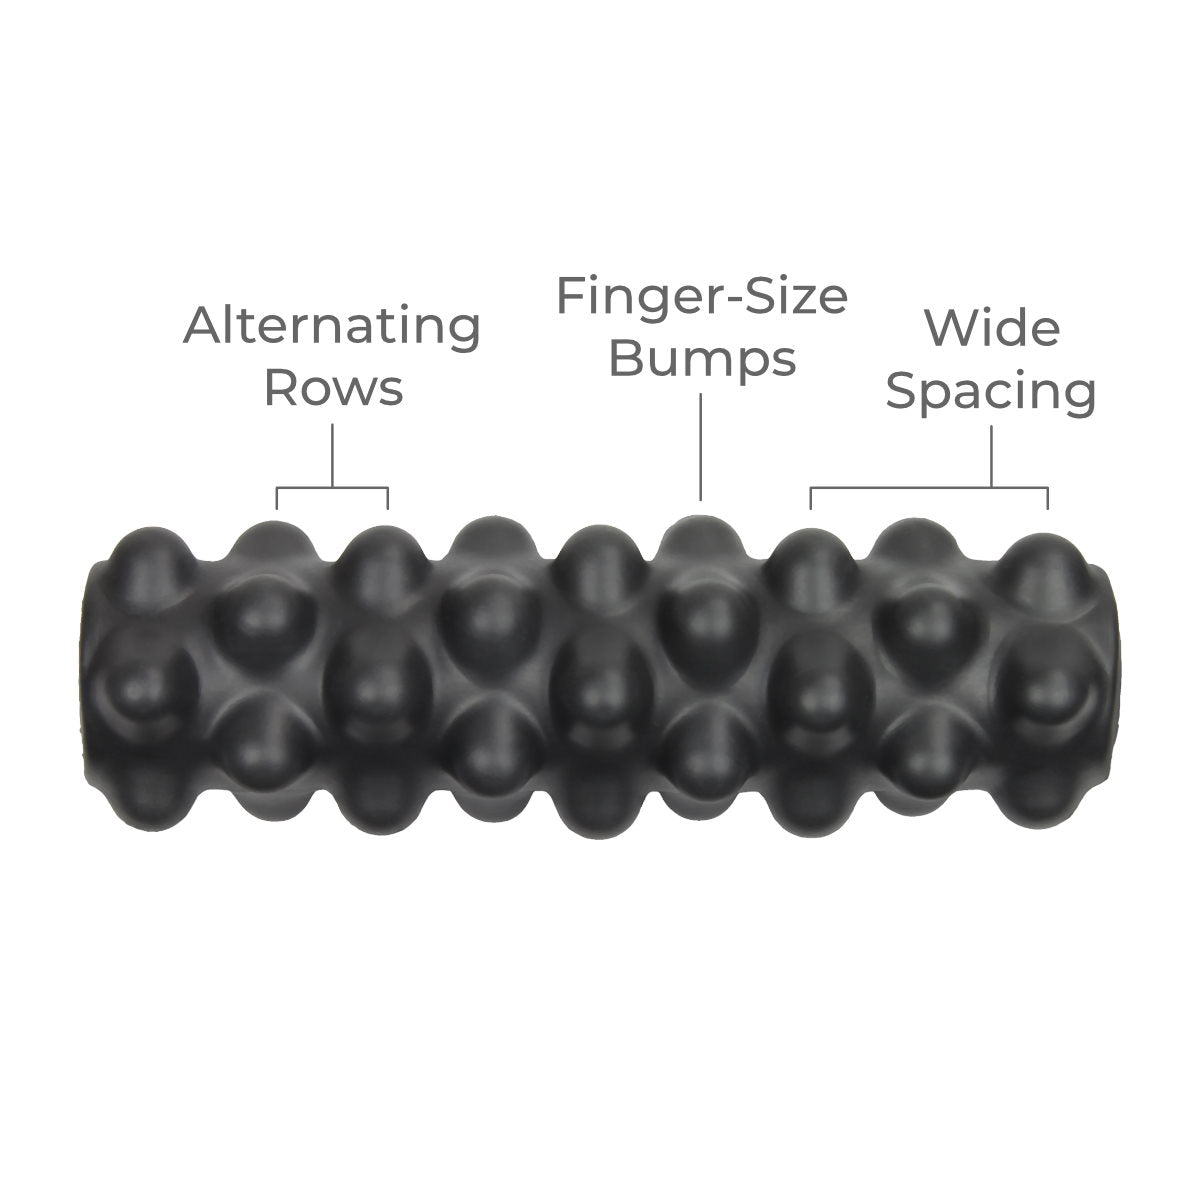 BreakUP bumpy firm-density foam roller for use with DoubleUP frame.  Straight perspective with notes on alternating rows of bumps, finger size bumps, and wide spacing.